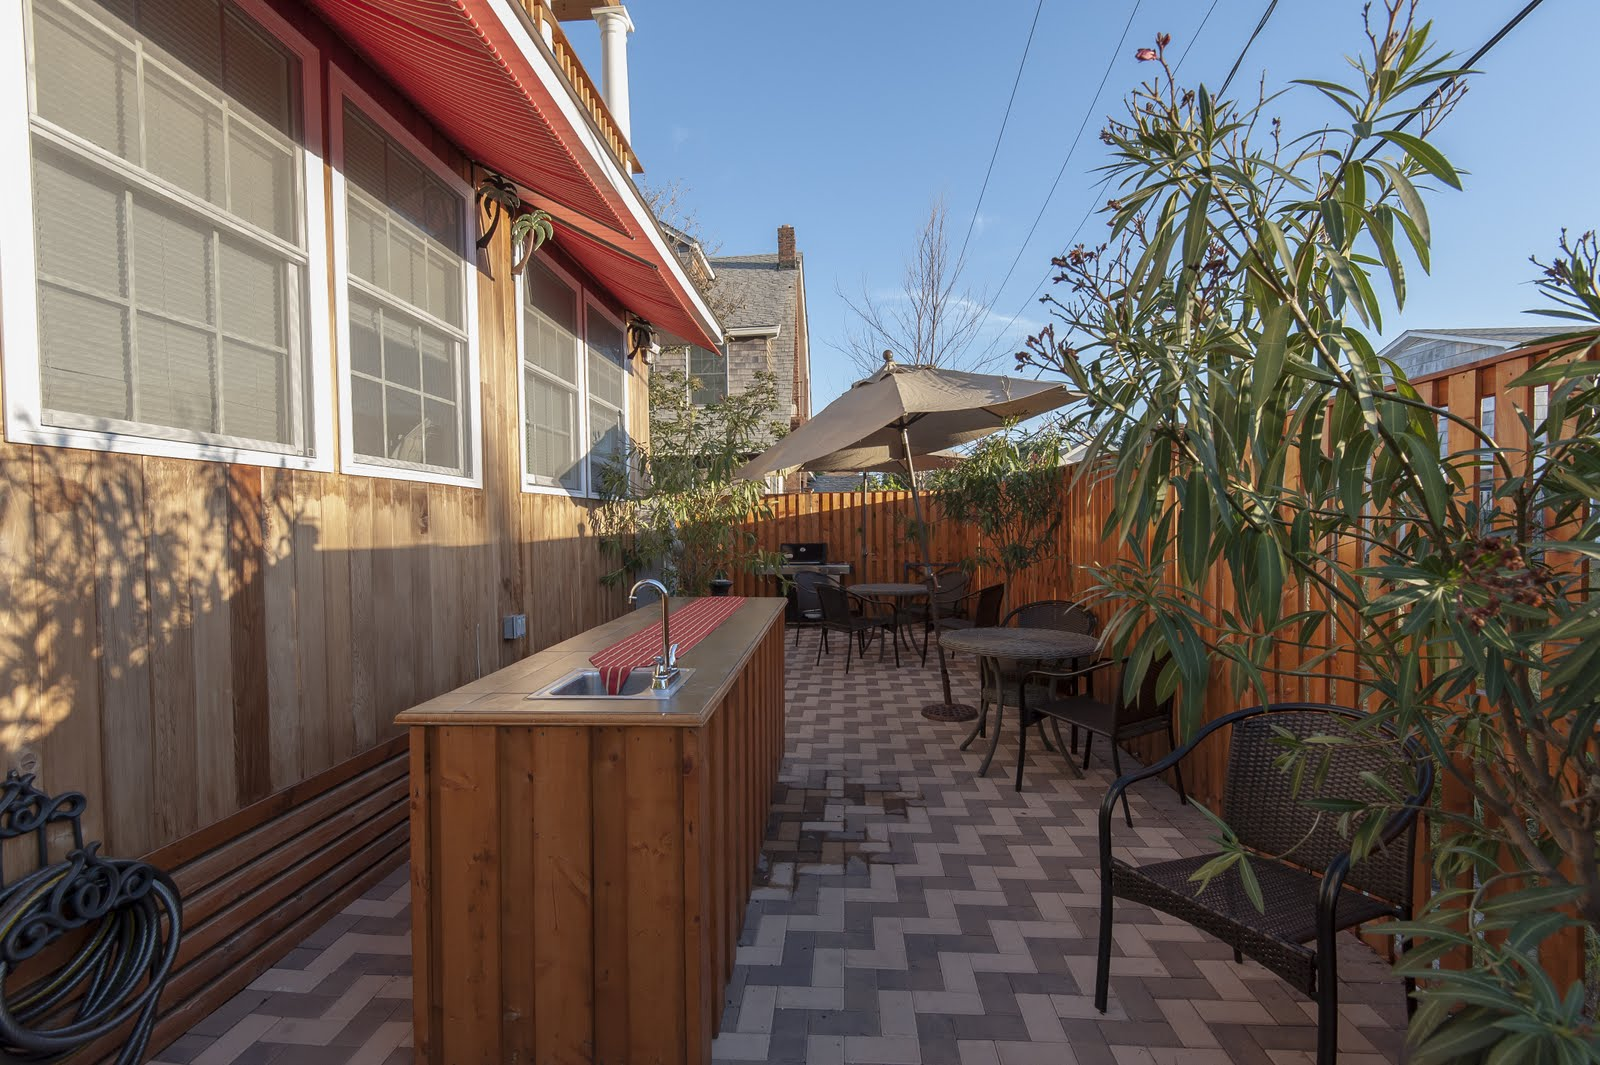 Bungalows private courtyard ,wraps around the back of the building. BBQ grills on site for guest use, outdoor showers, ice machine.